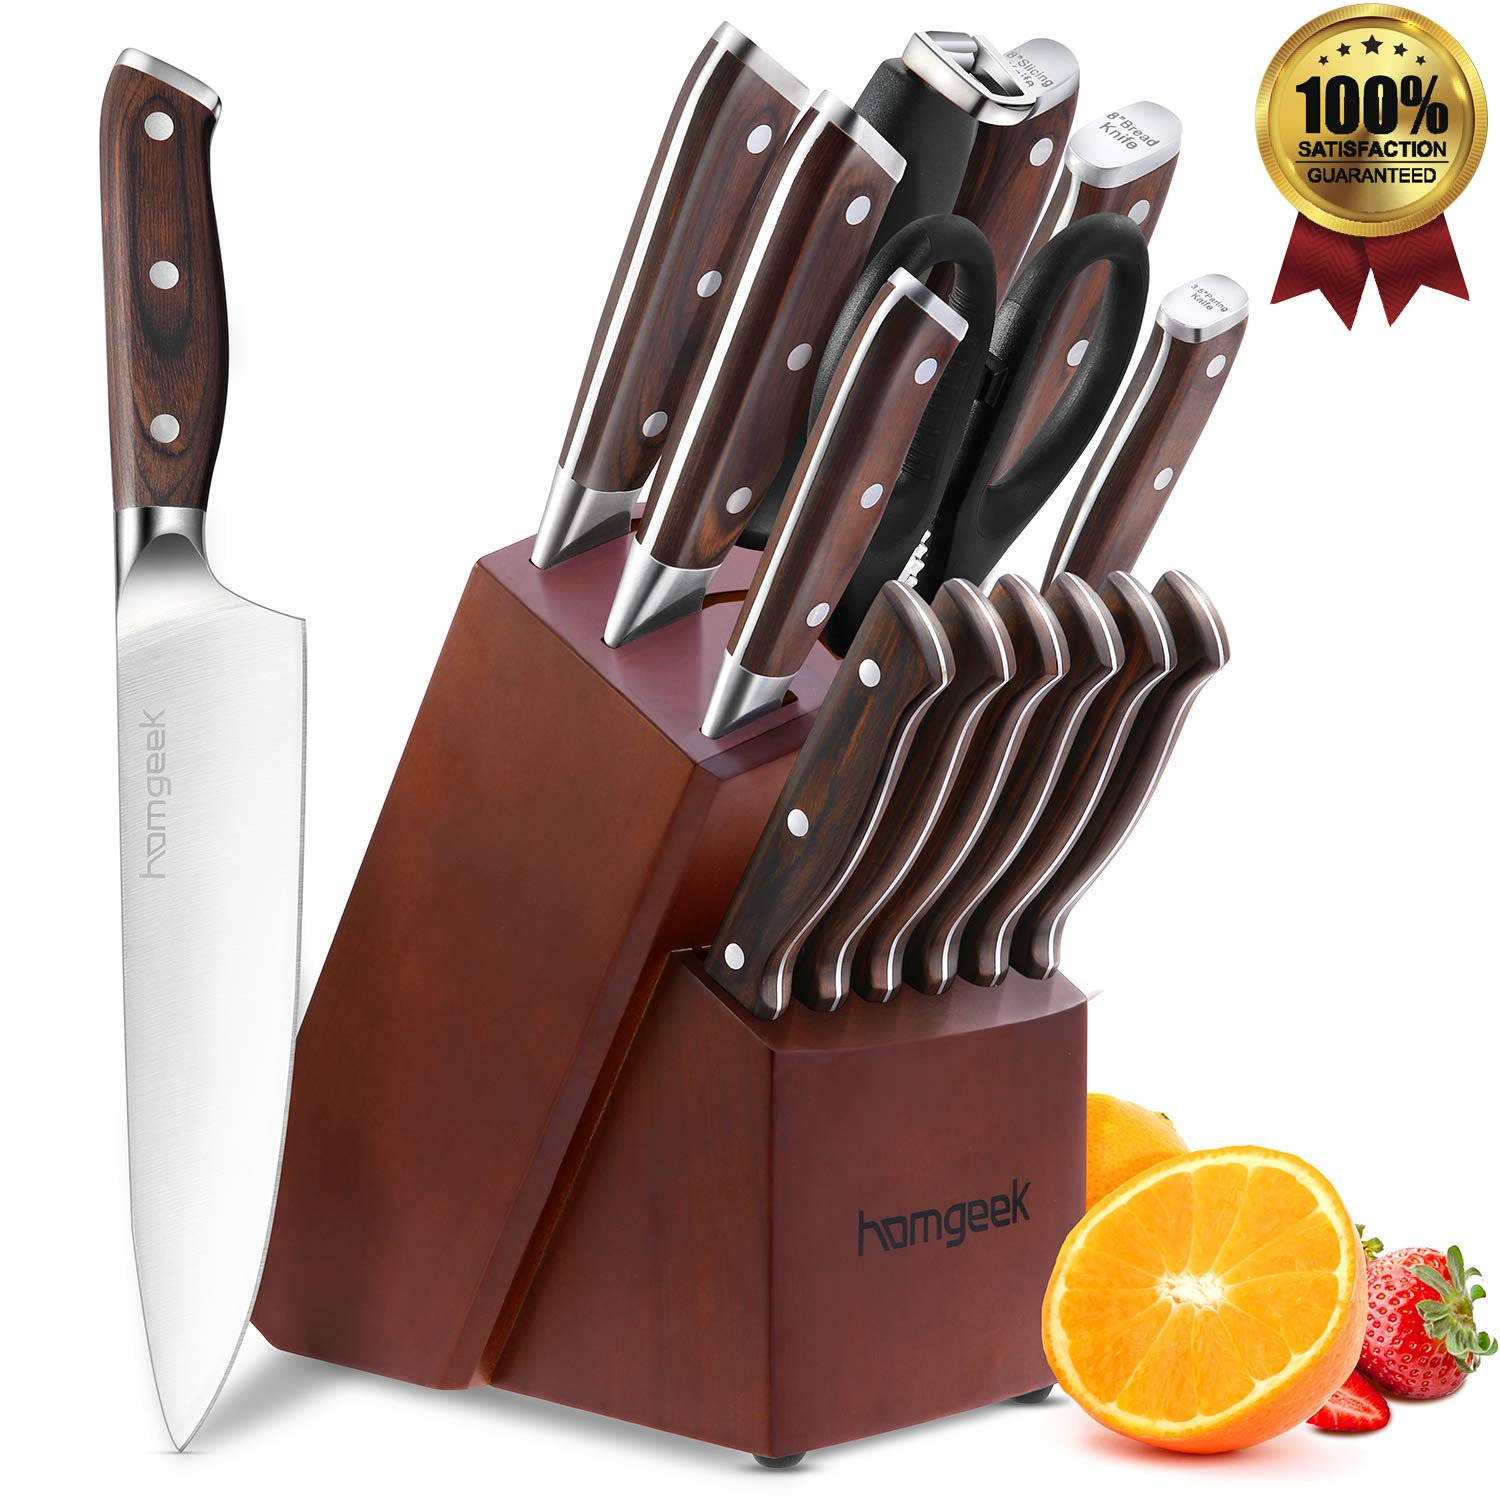 Chef Knife Set,15 Piece Knife set With Wooden Block,Wood Handle and German 1.4116 Stainless Steel,Full-Tang by homgeek (Image #1)